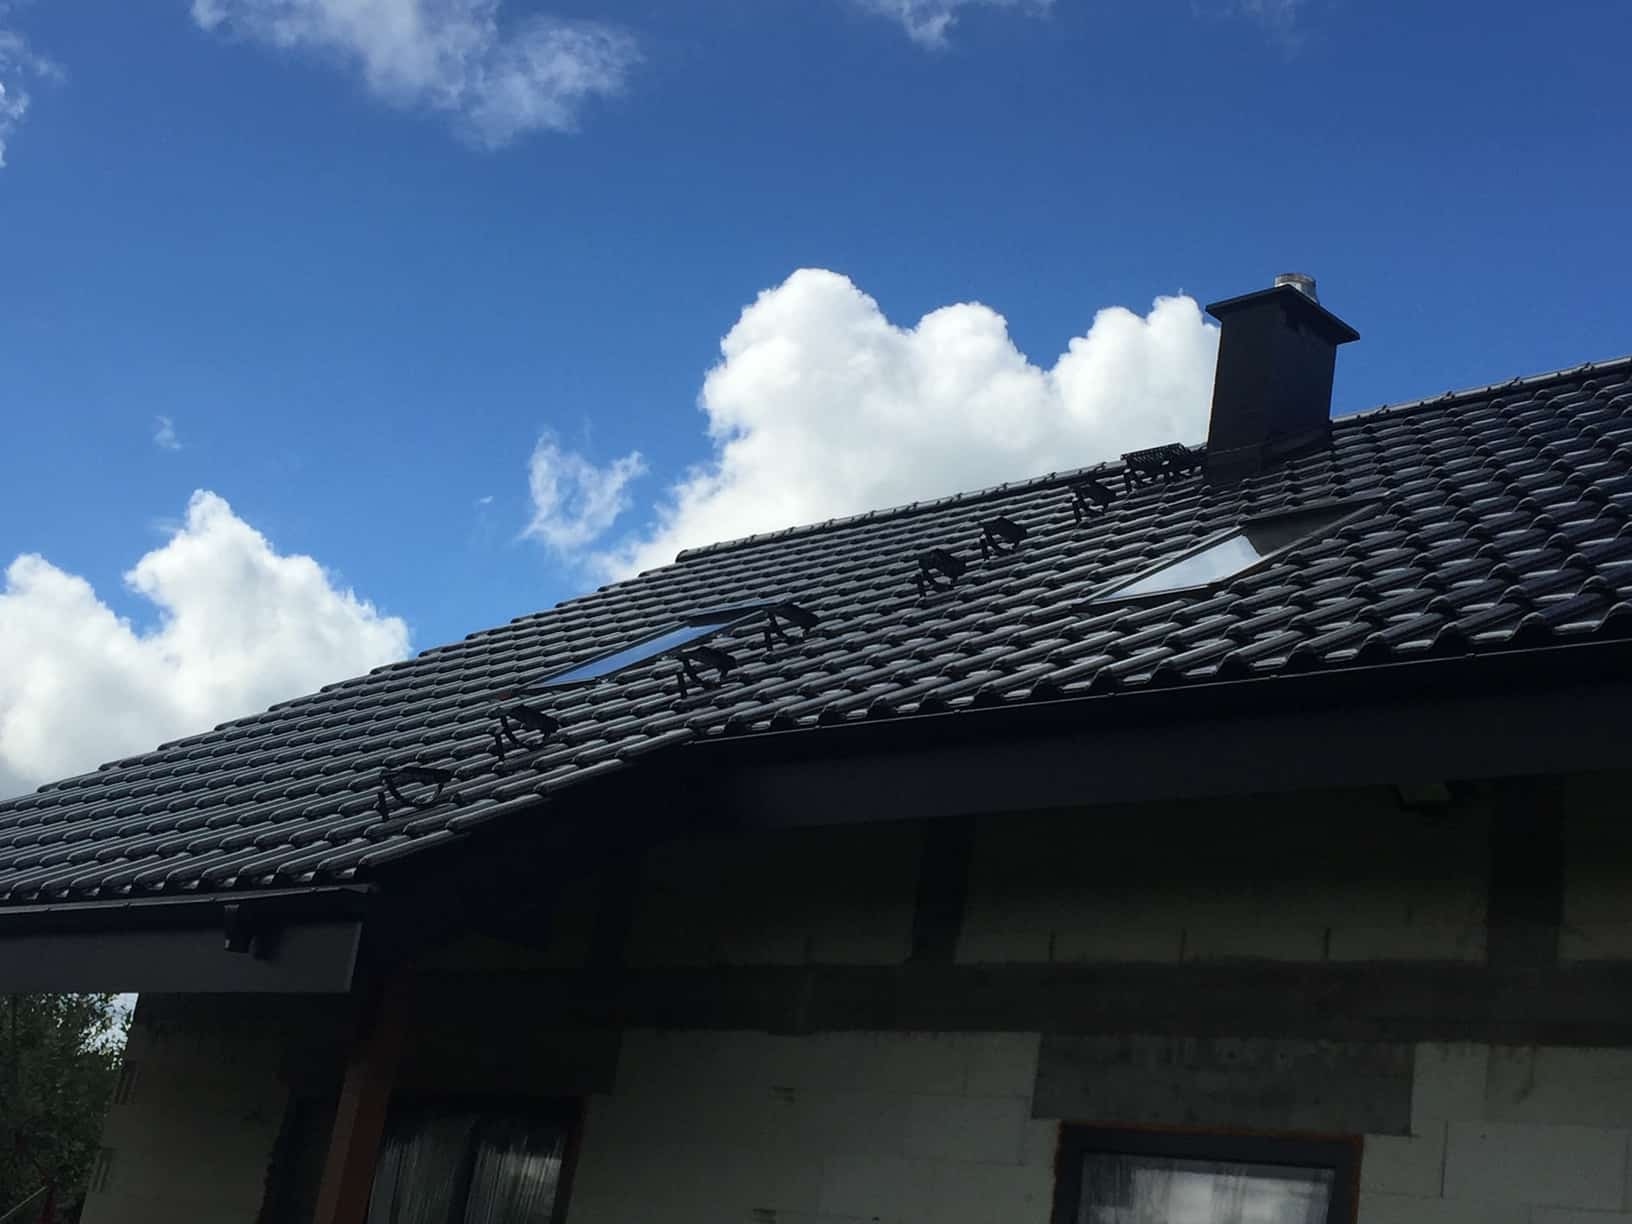 t3 - Export of roofing from Poland